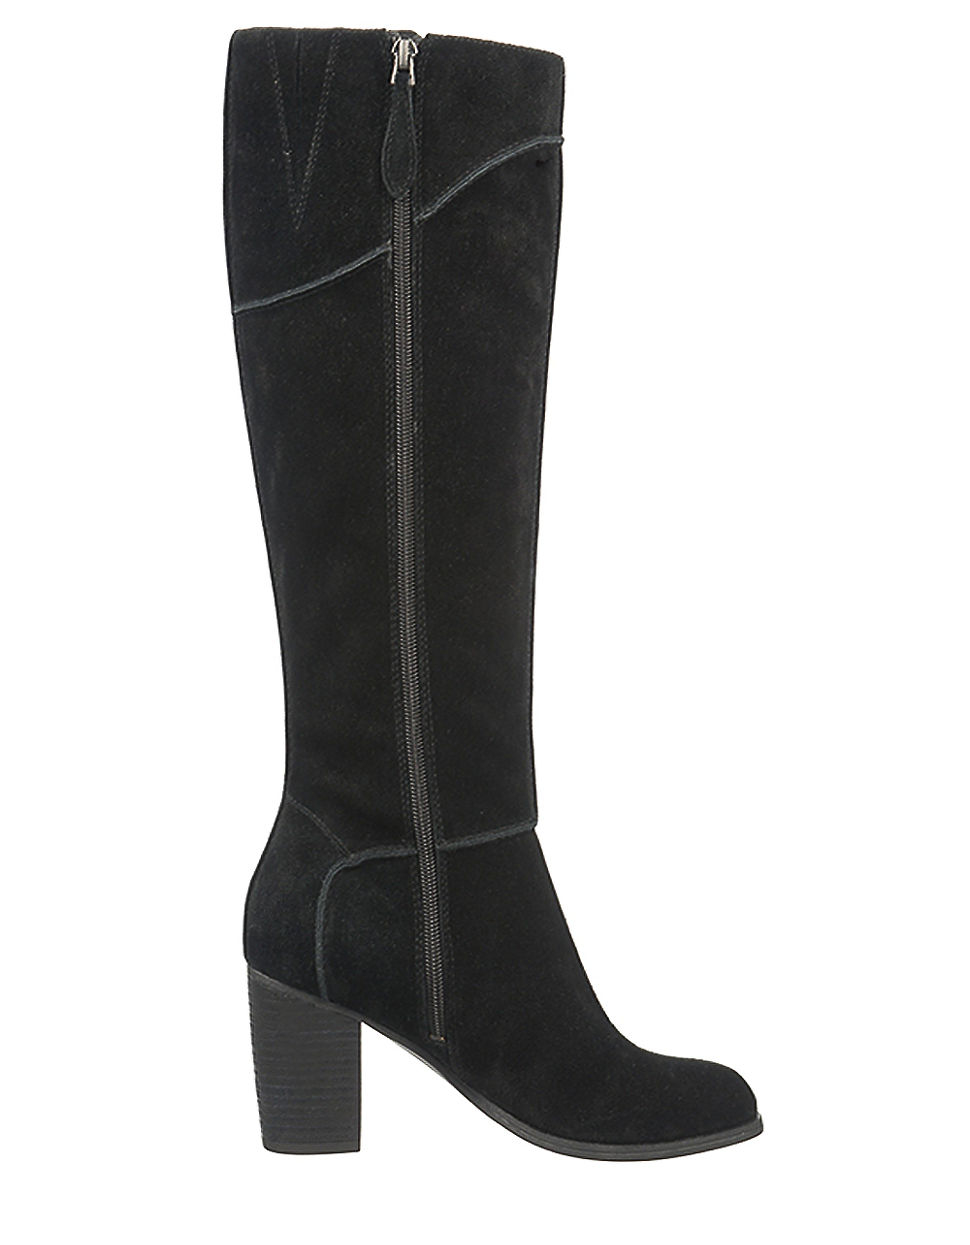 Franco sarto yamka leather tall boots in black lyst for Franco sarto motor over the knee boots